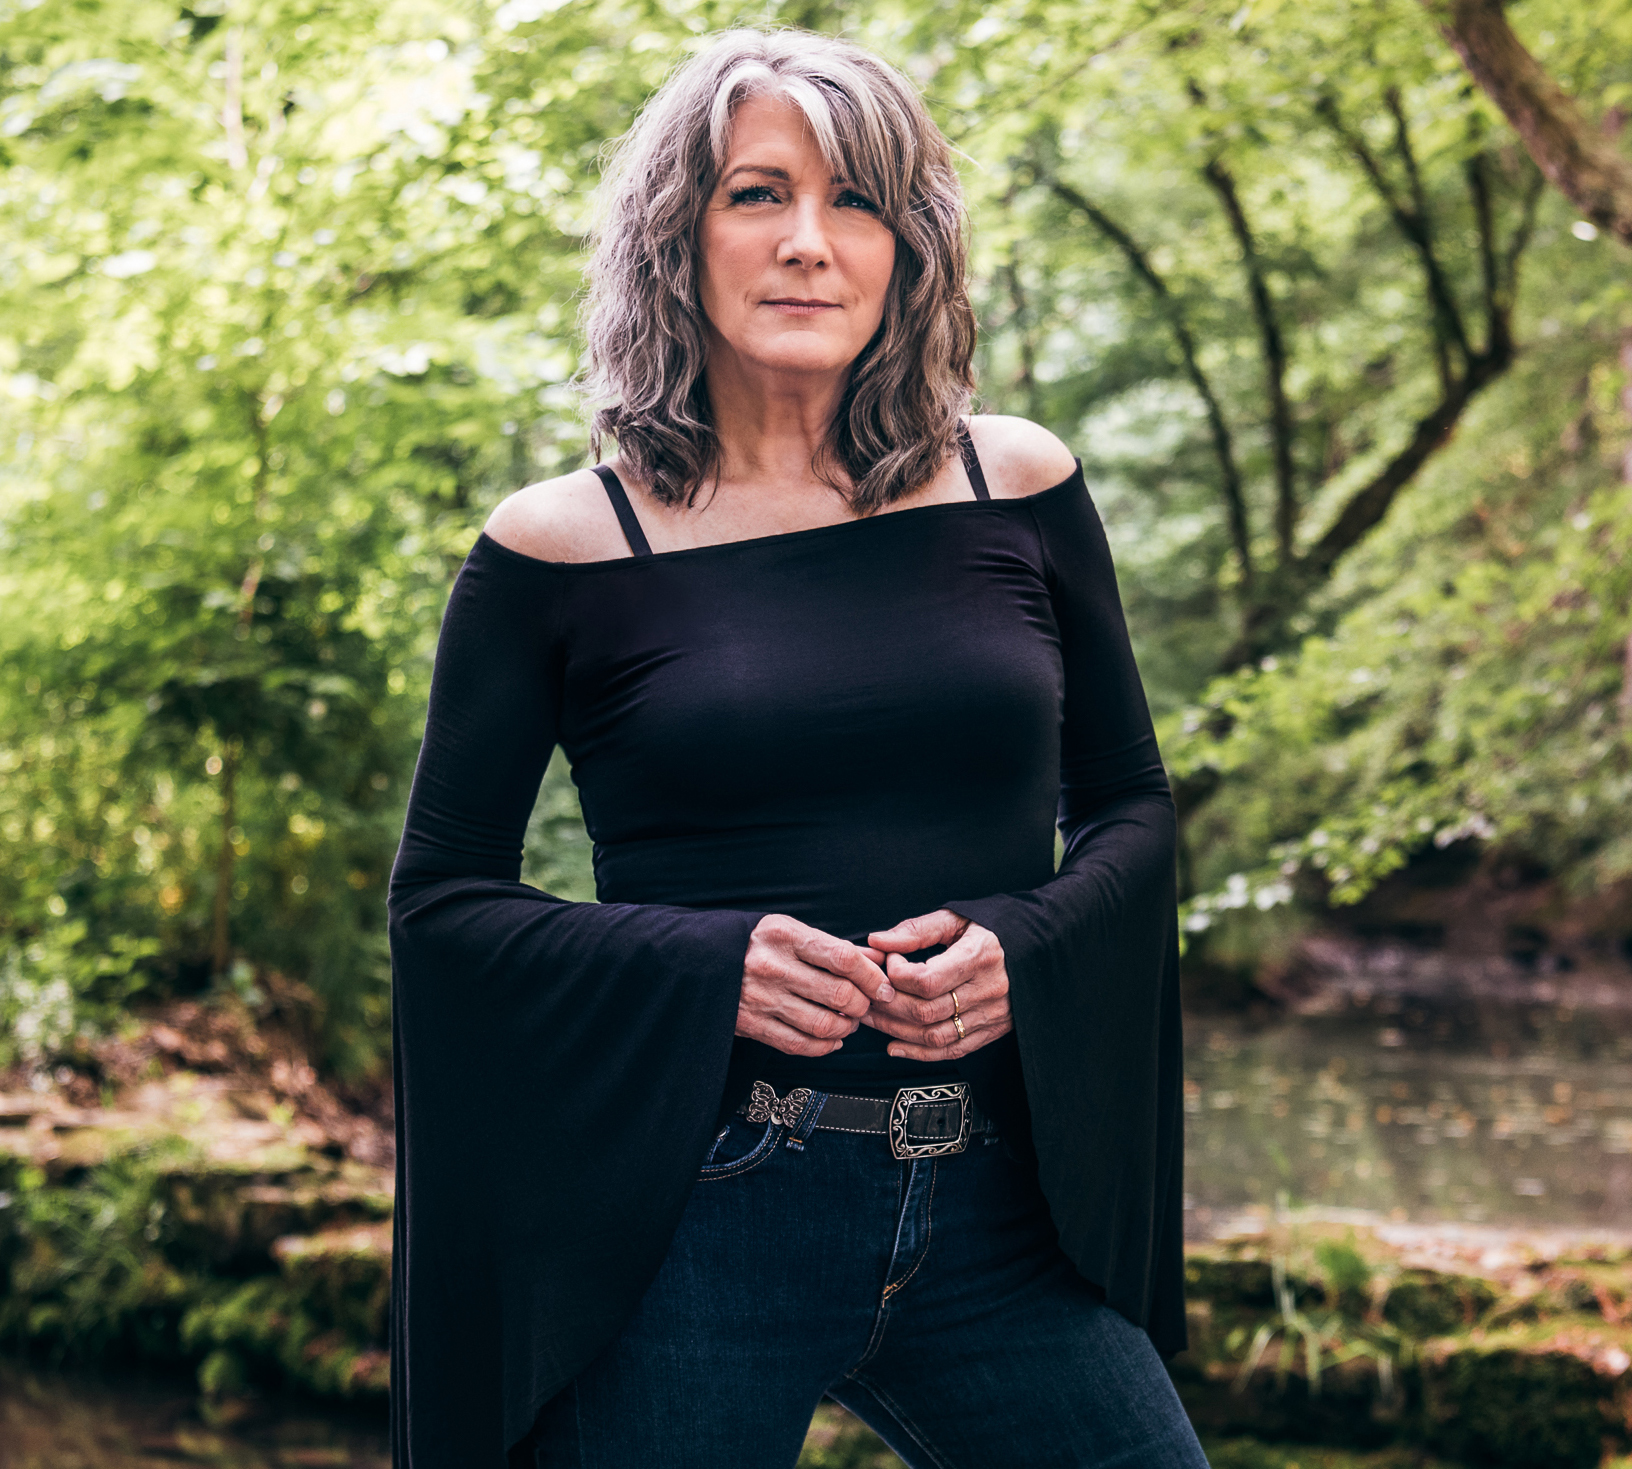 Kathy Mattea blends her unique brand of country, folk and Americana music into a style all her own. She appears live at the historic Cactus Theater, Wednesday, May 1.